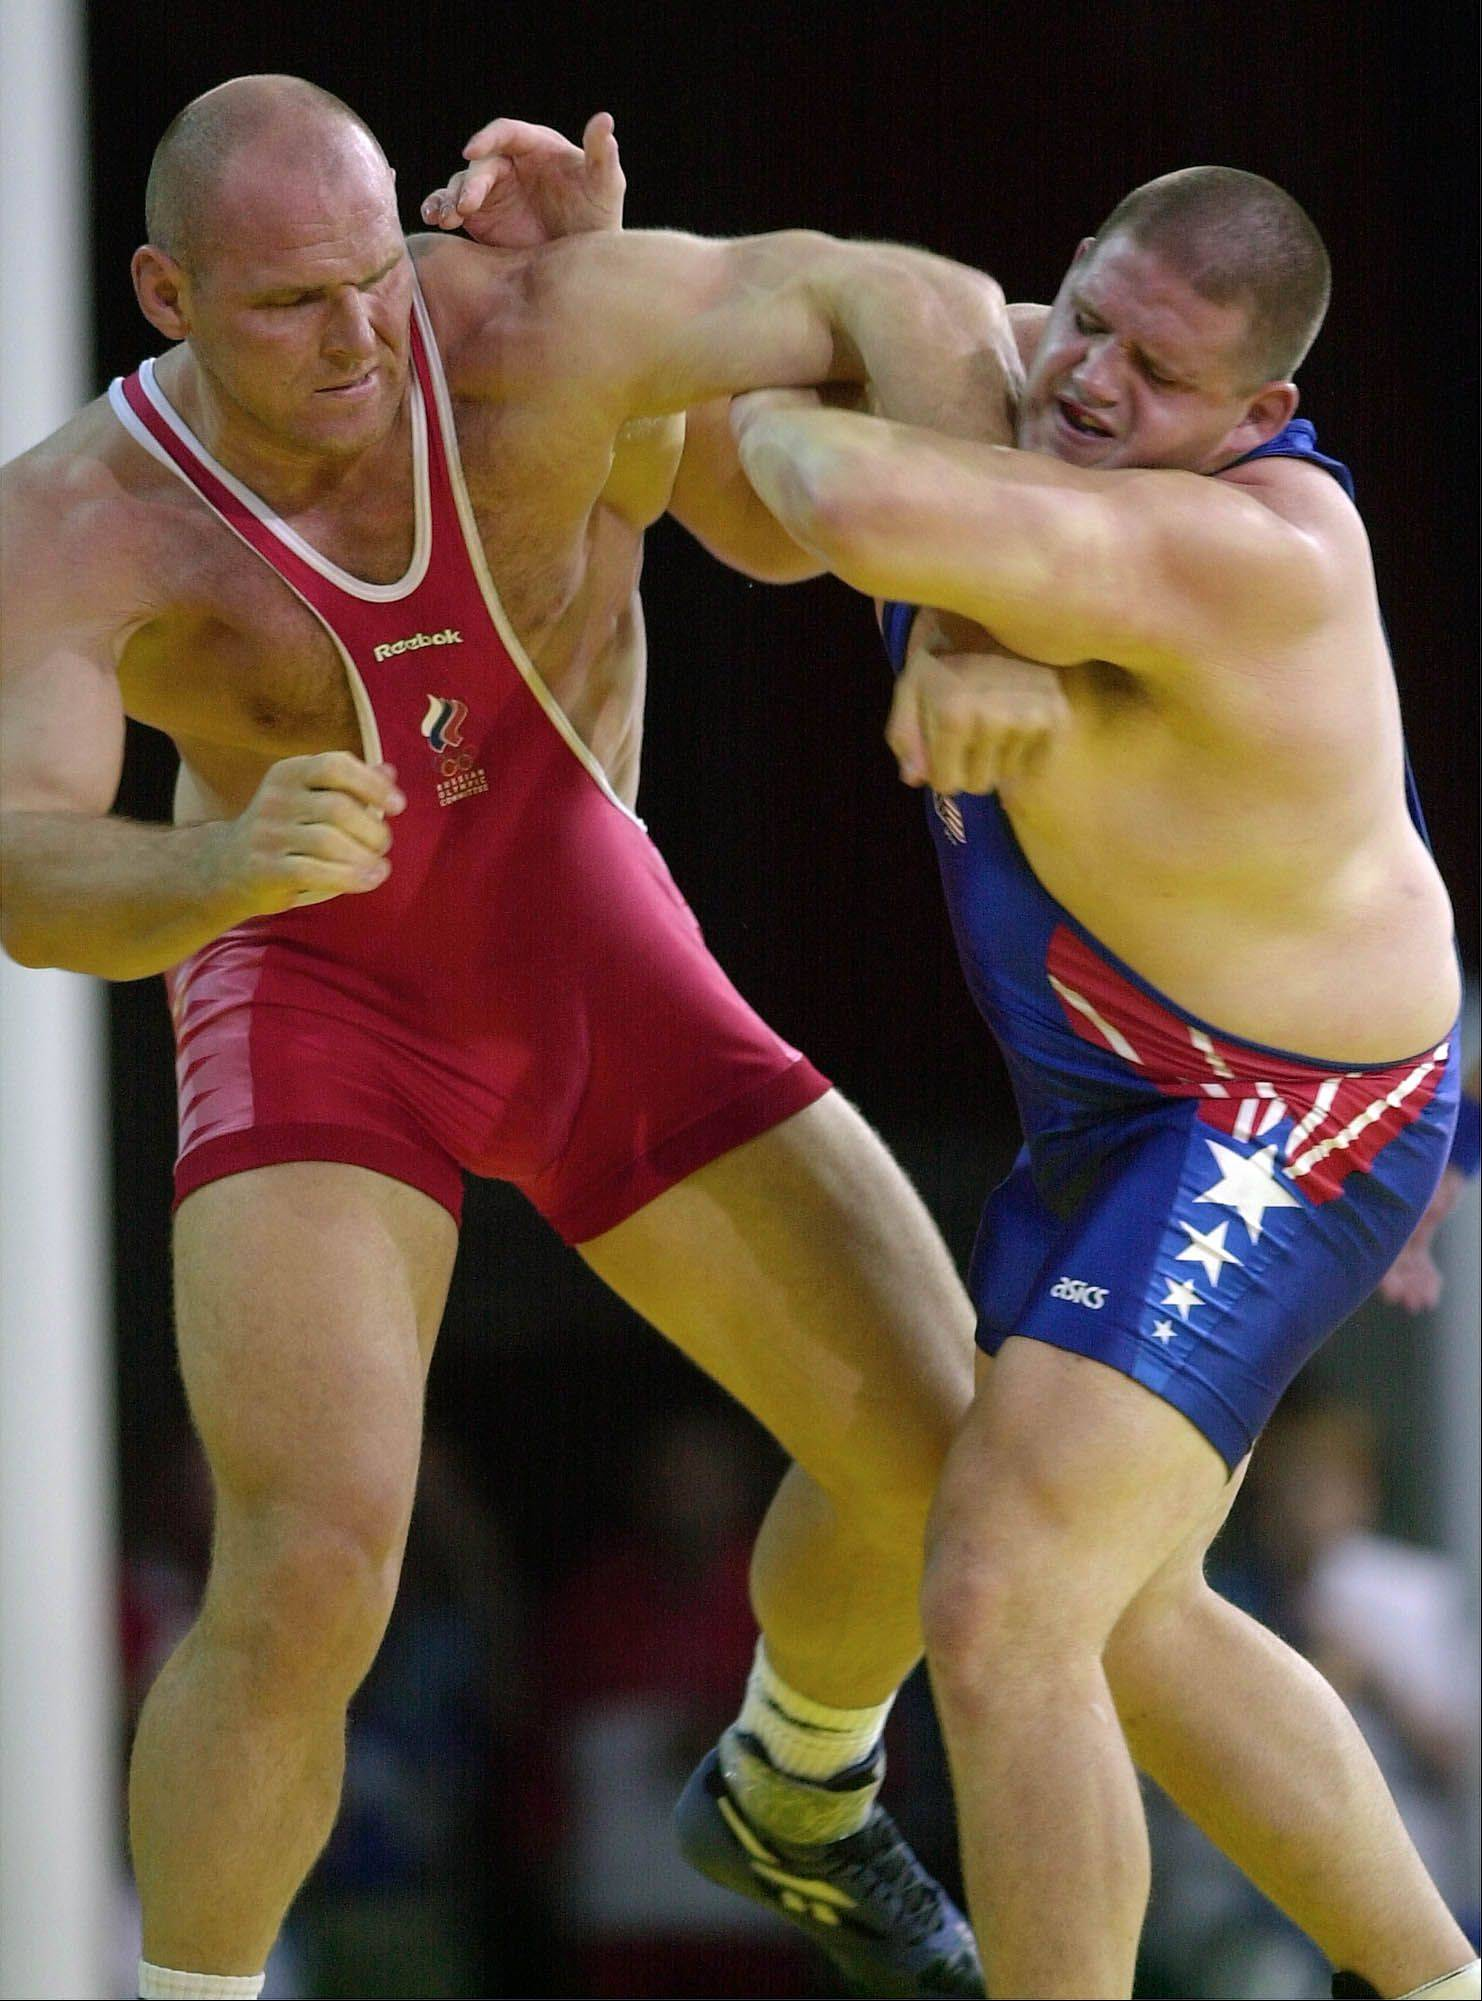 Rulon Gardner, right, of the United States holds the arm of Alexander Karelin of Russia during the final bout action on his way to winning the gold medal in the 130 kg class of Greco-Roman wrestling event in the Summer Olympic Games in Sydney Wednesday, Sept. 27, 2000.